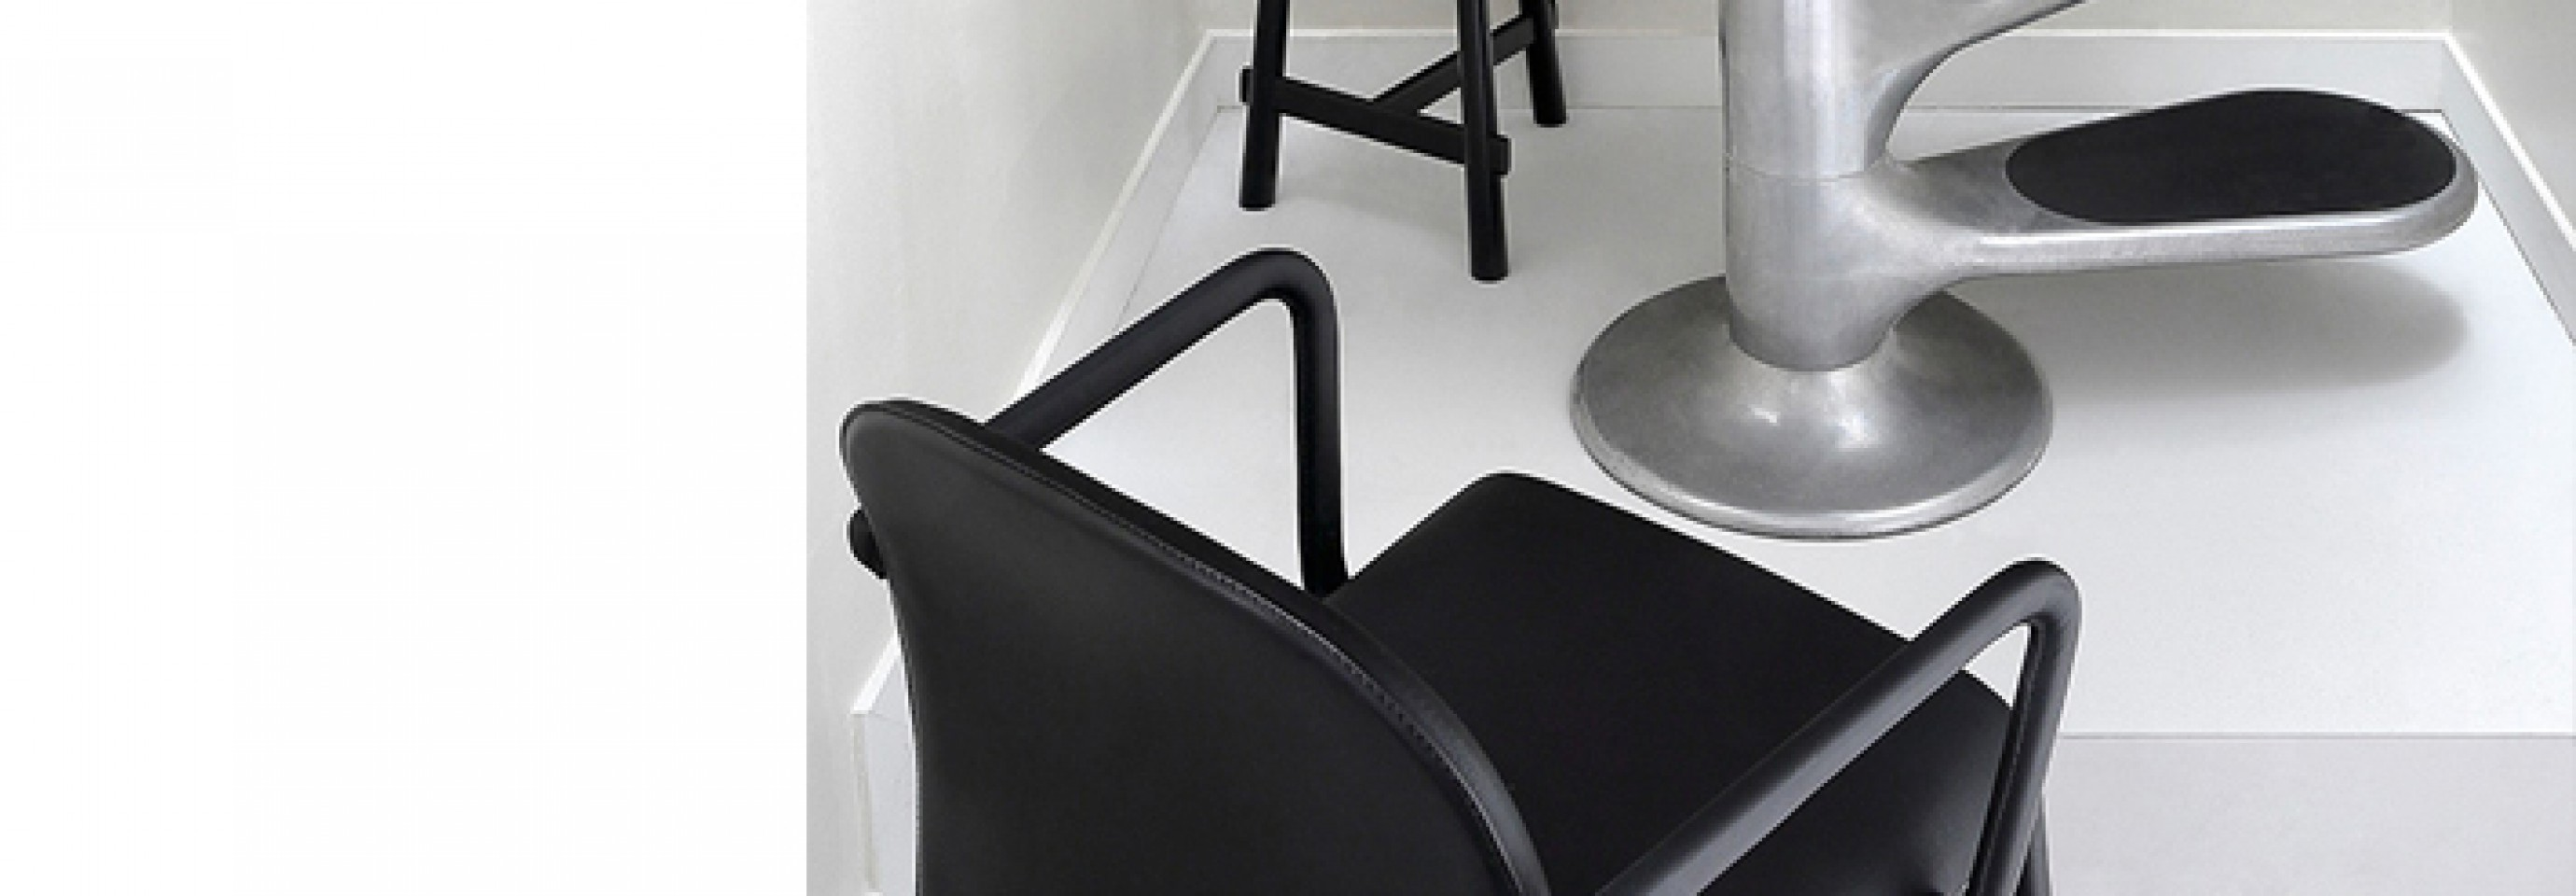 Scala chair met armleuningen: een alternatief voor de CAP chair van Cassina...  Victors Design Agency